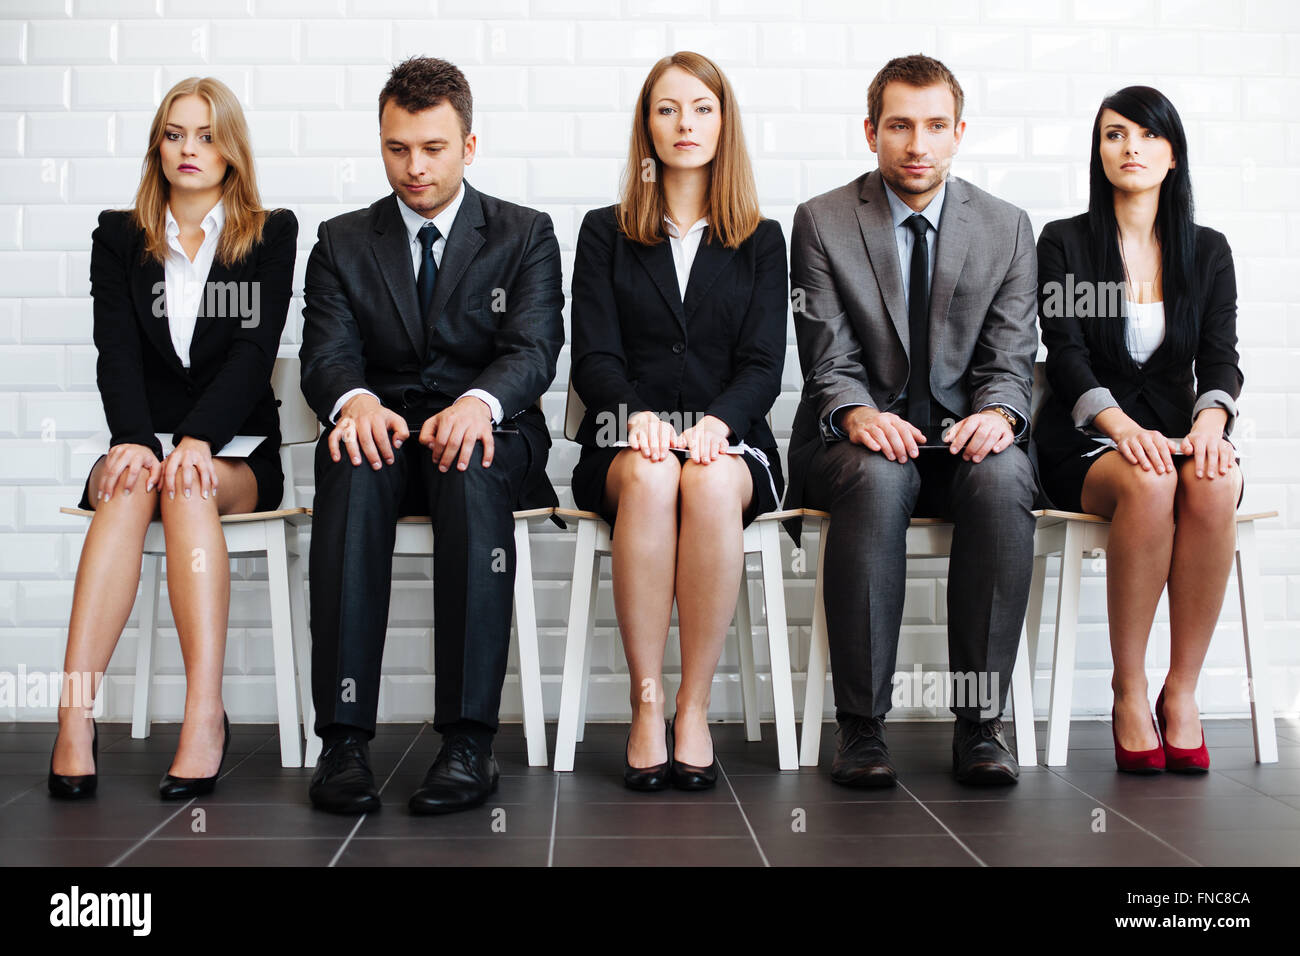 Stressed business people wiating for job interview - Stock Image